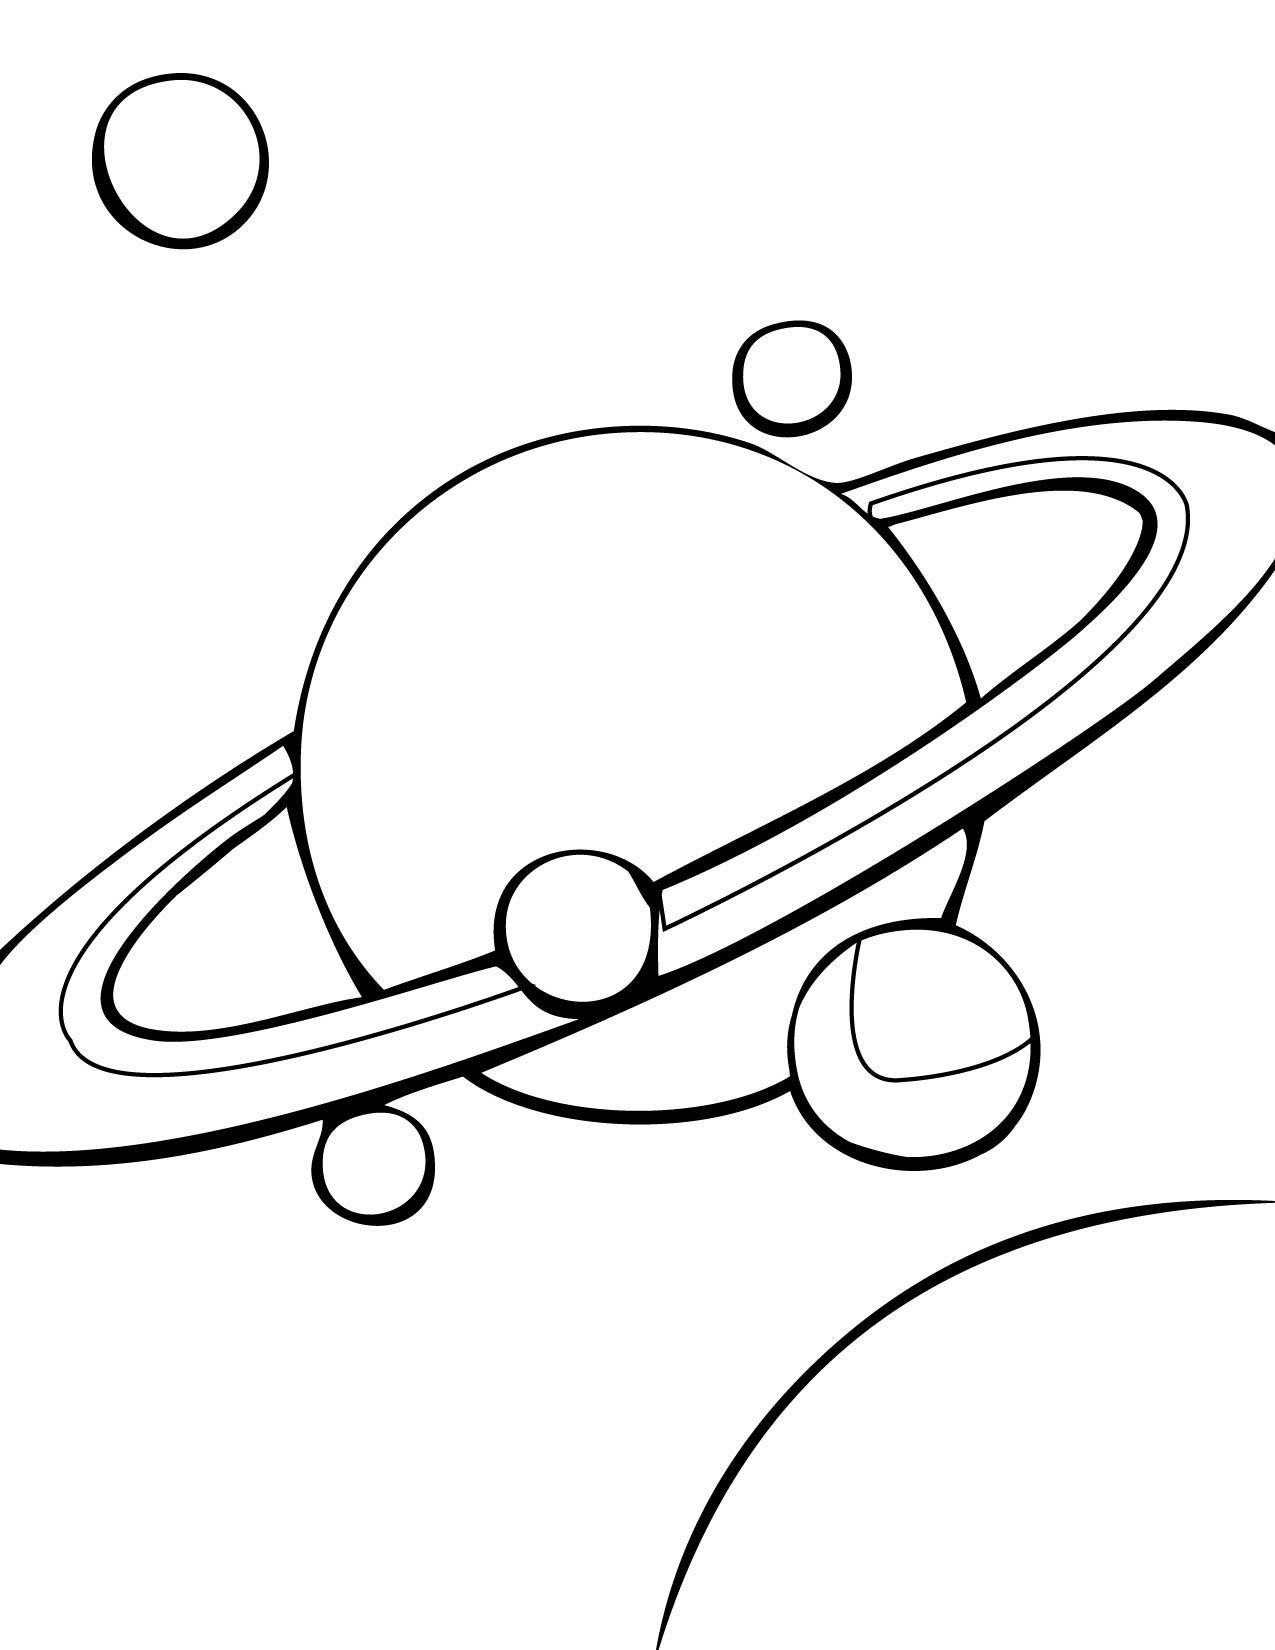 coloring solar system black and white solar system color page printable solar system coloring white black coloring solar system and